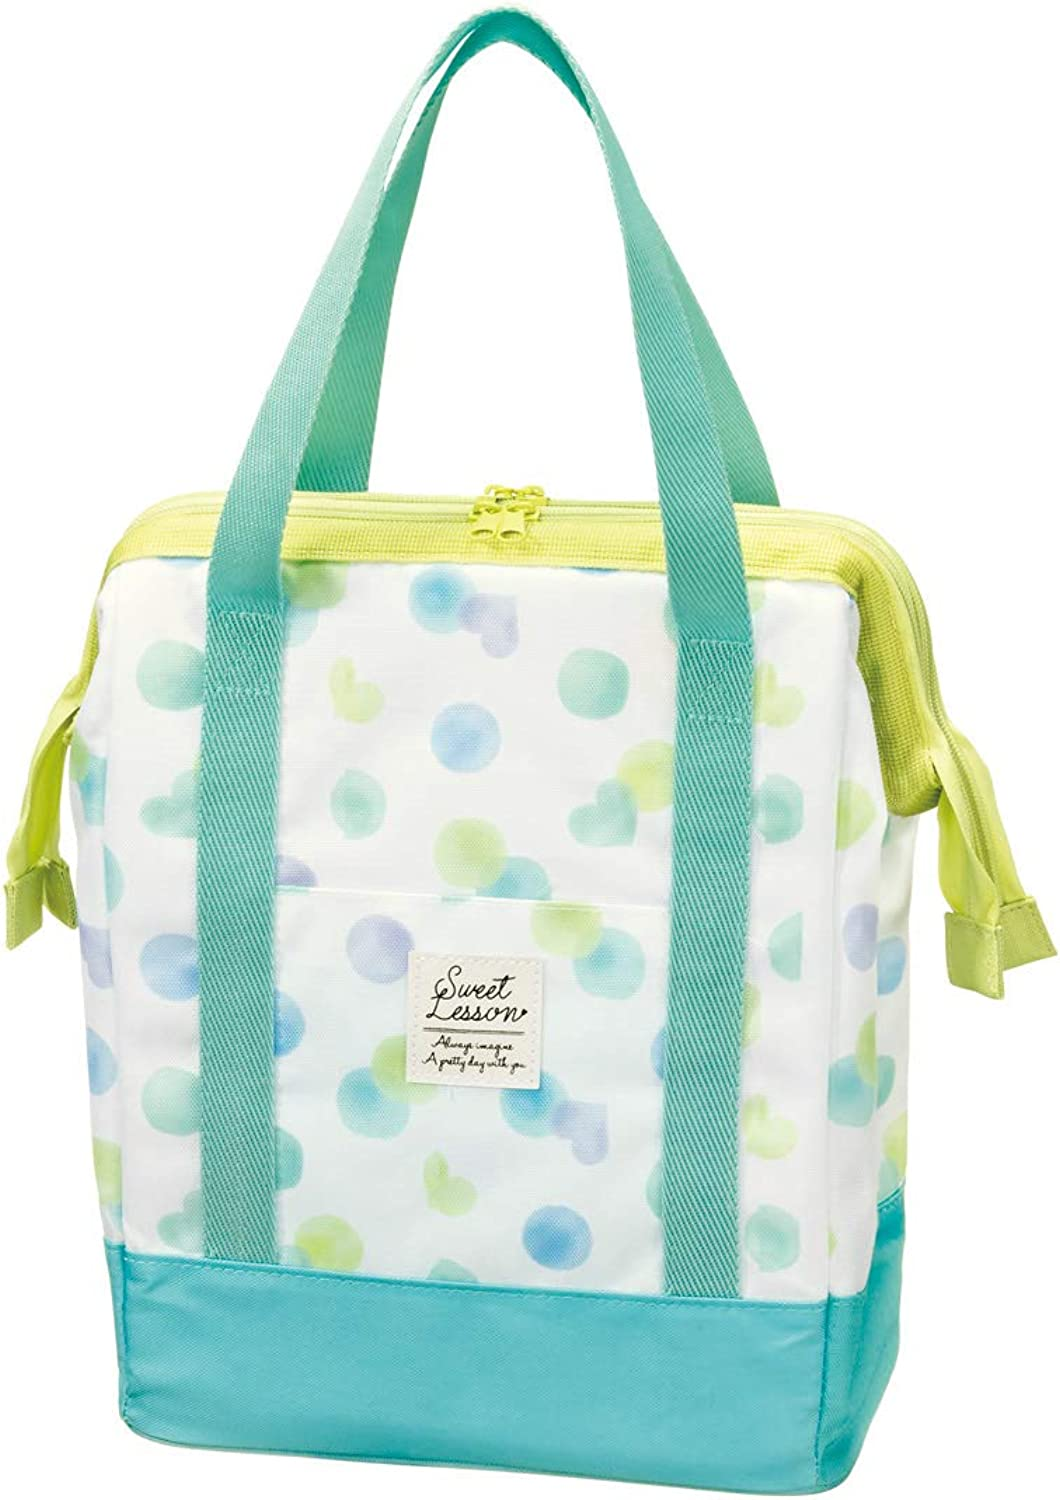 barato PJ Warm Cold Double Coin Type Lunch Bag Bag Bag [Suite Lessons (Mint)]  entrega gratis